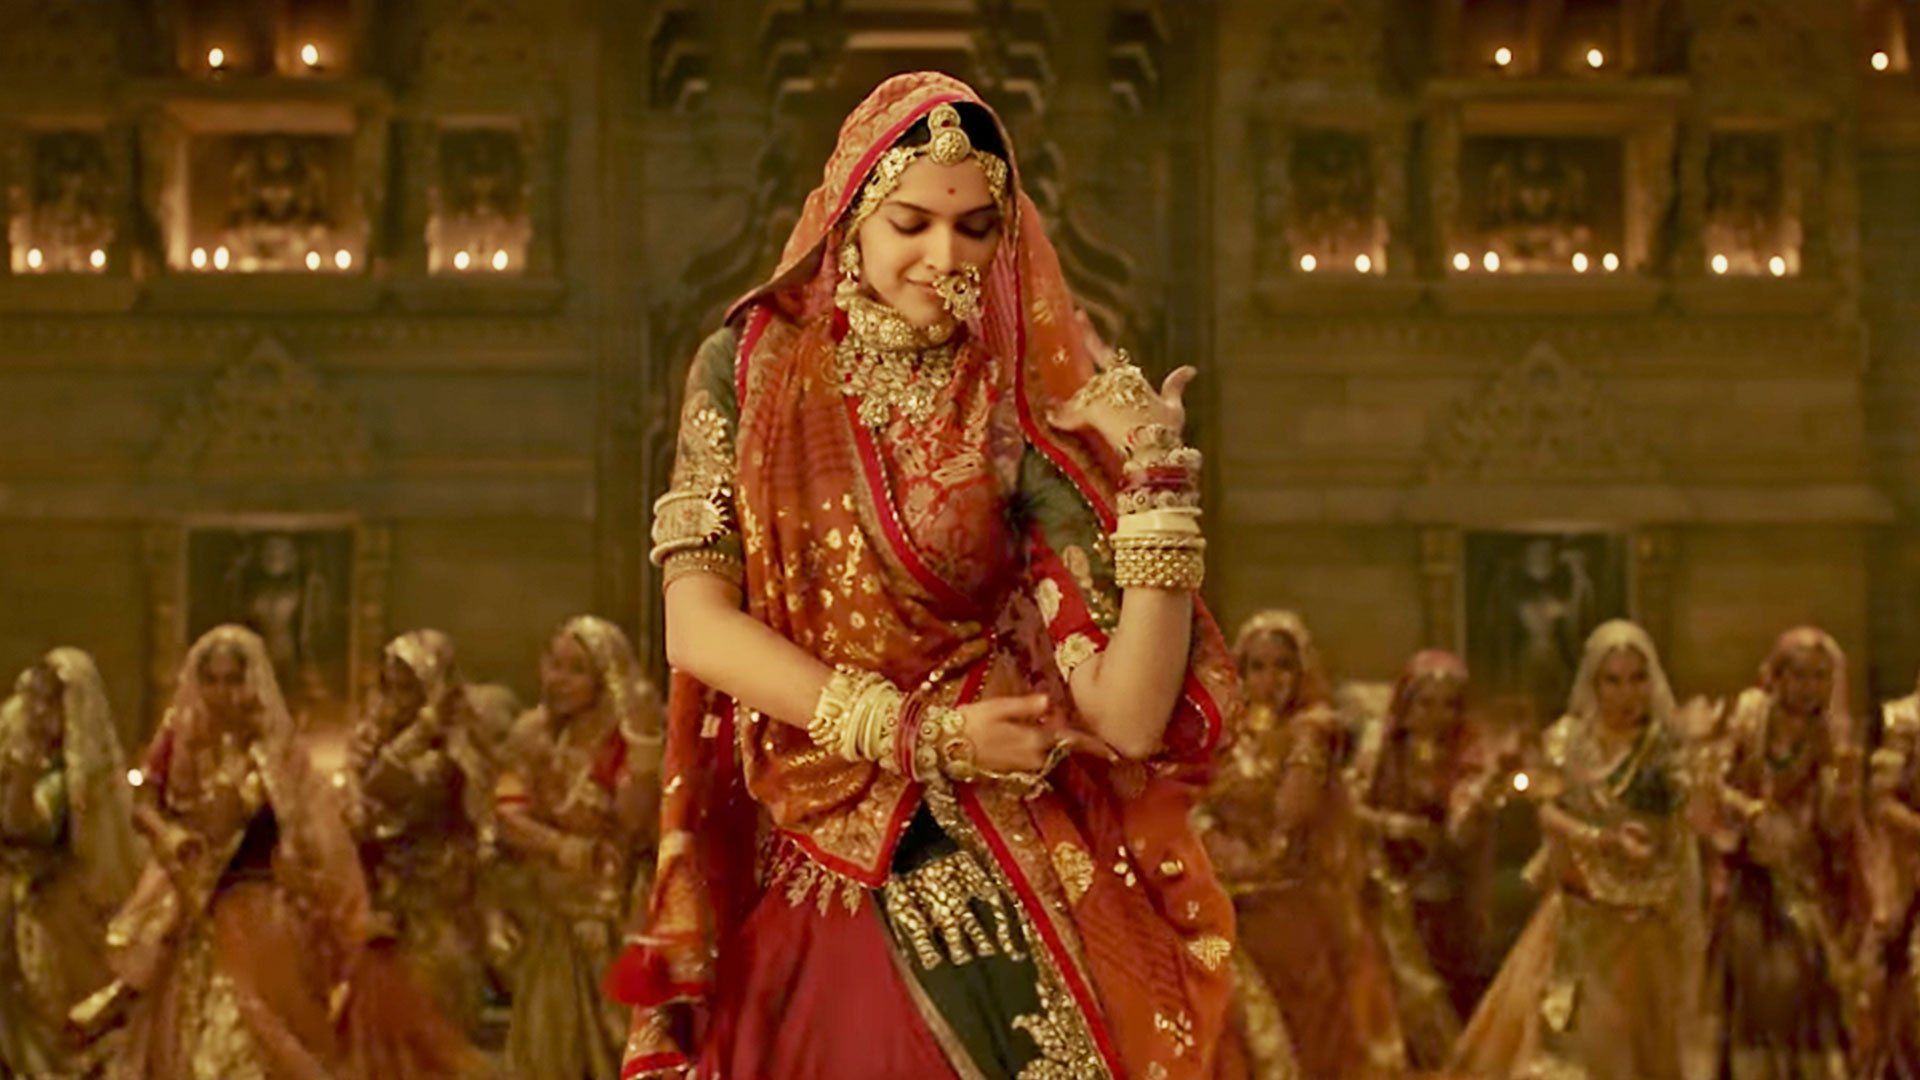 Deepika Gets A 'Sanskari' Midriff Post VFX In Ghoomar ...